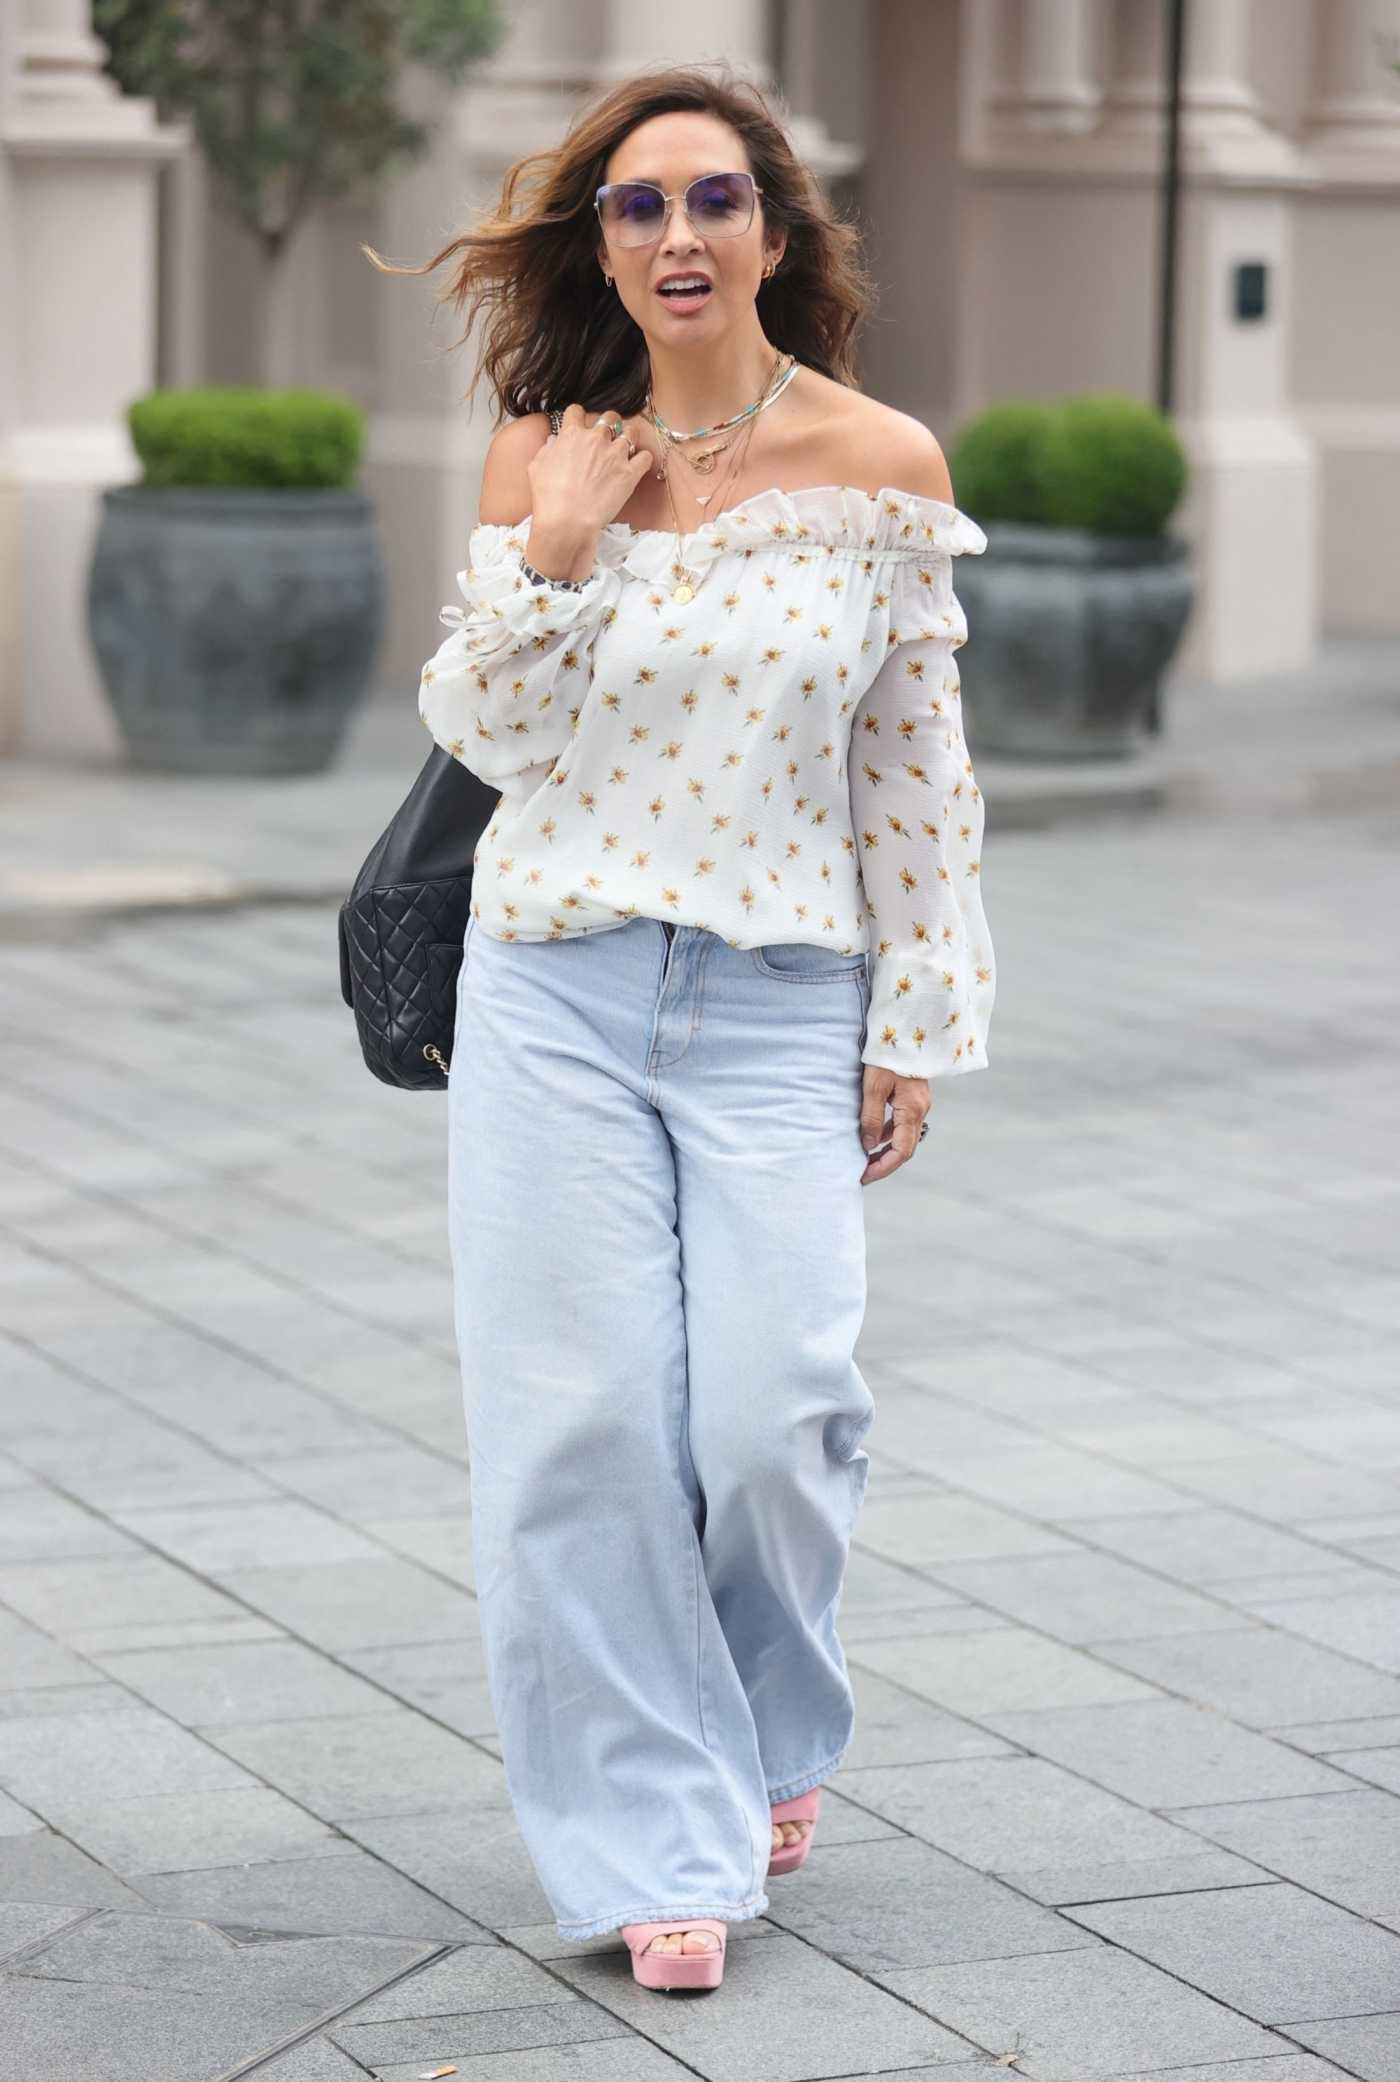 Myleene Klass in a White Floral Blouse Arrives at the Global Studios in London 08/19/2021